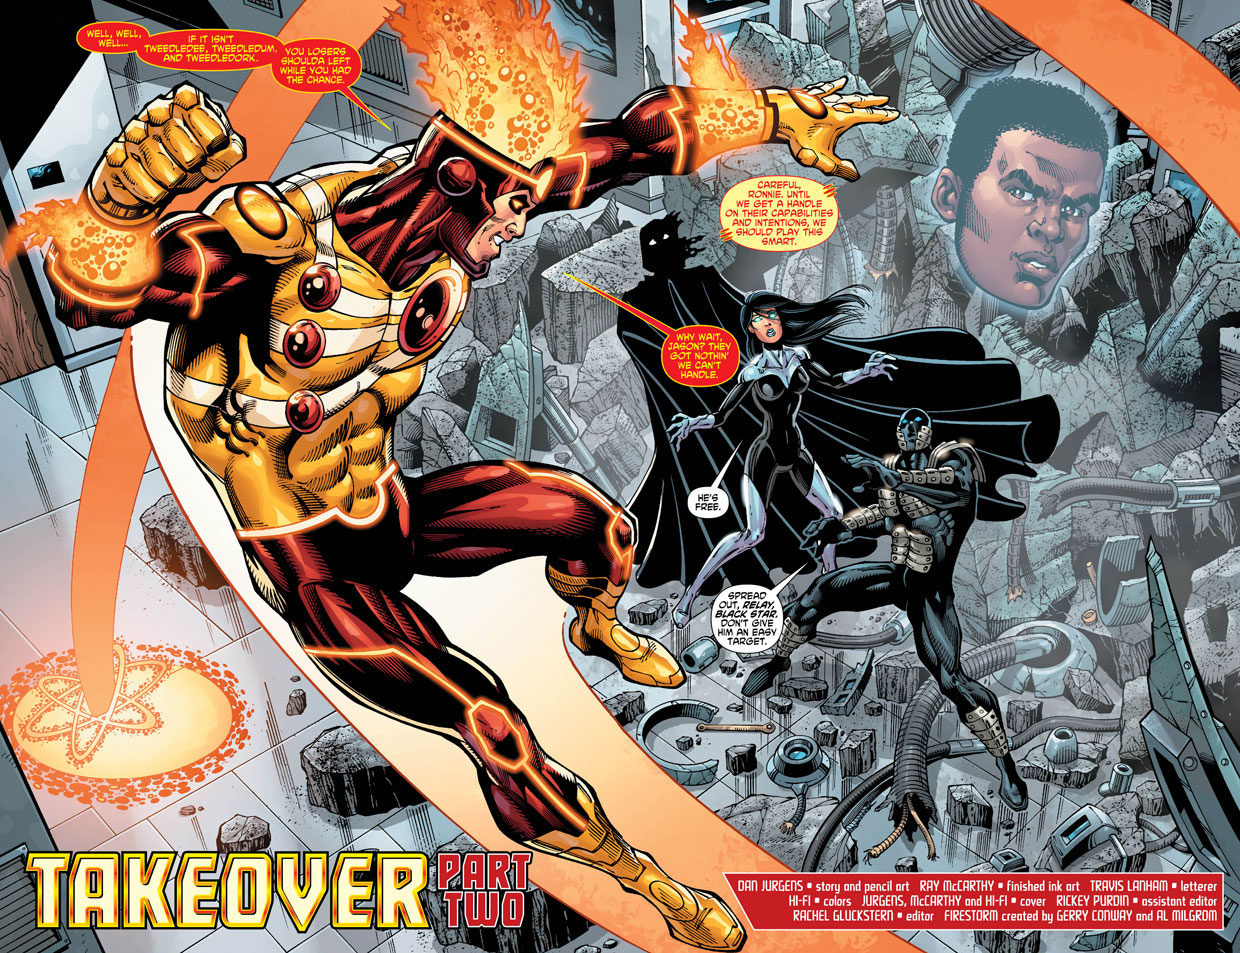 Fury of Firestorm: The Nuclear Man #14 pages 2 & 3 by Dan Jurgens, Ray McCarthy, and Hi-Fi Color